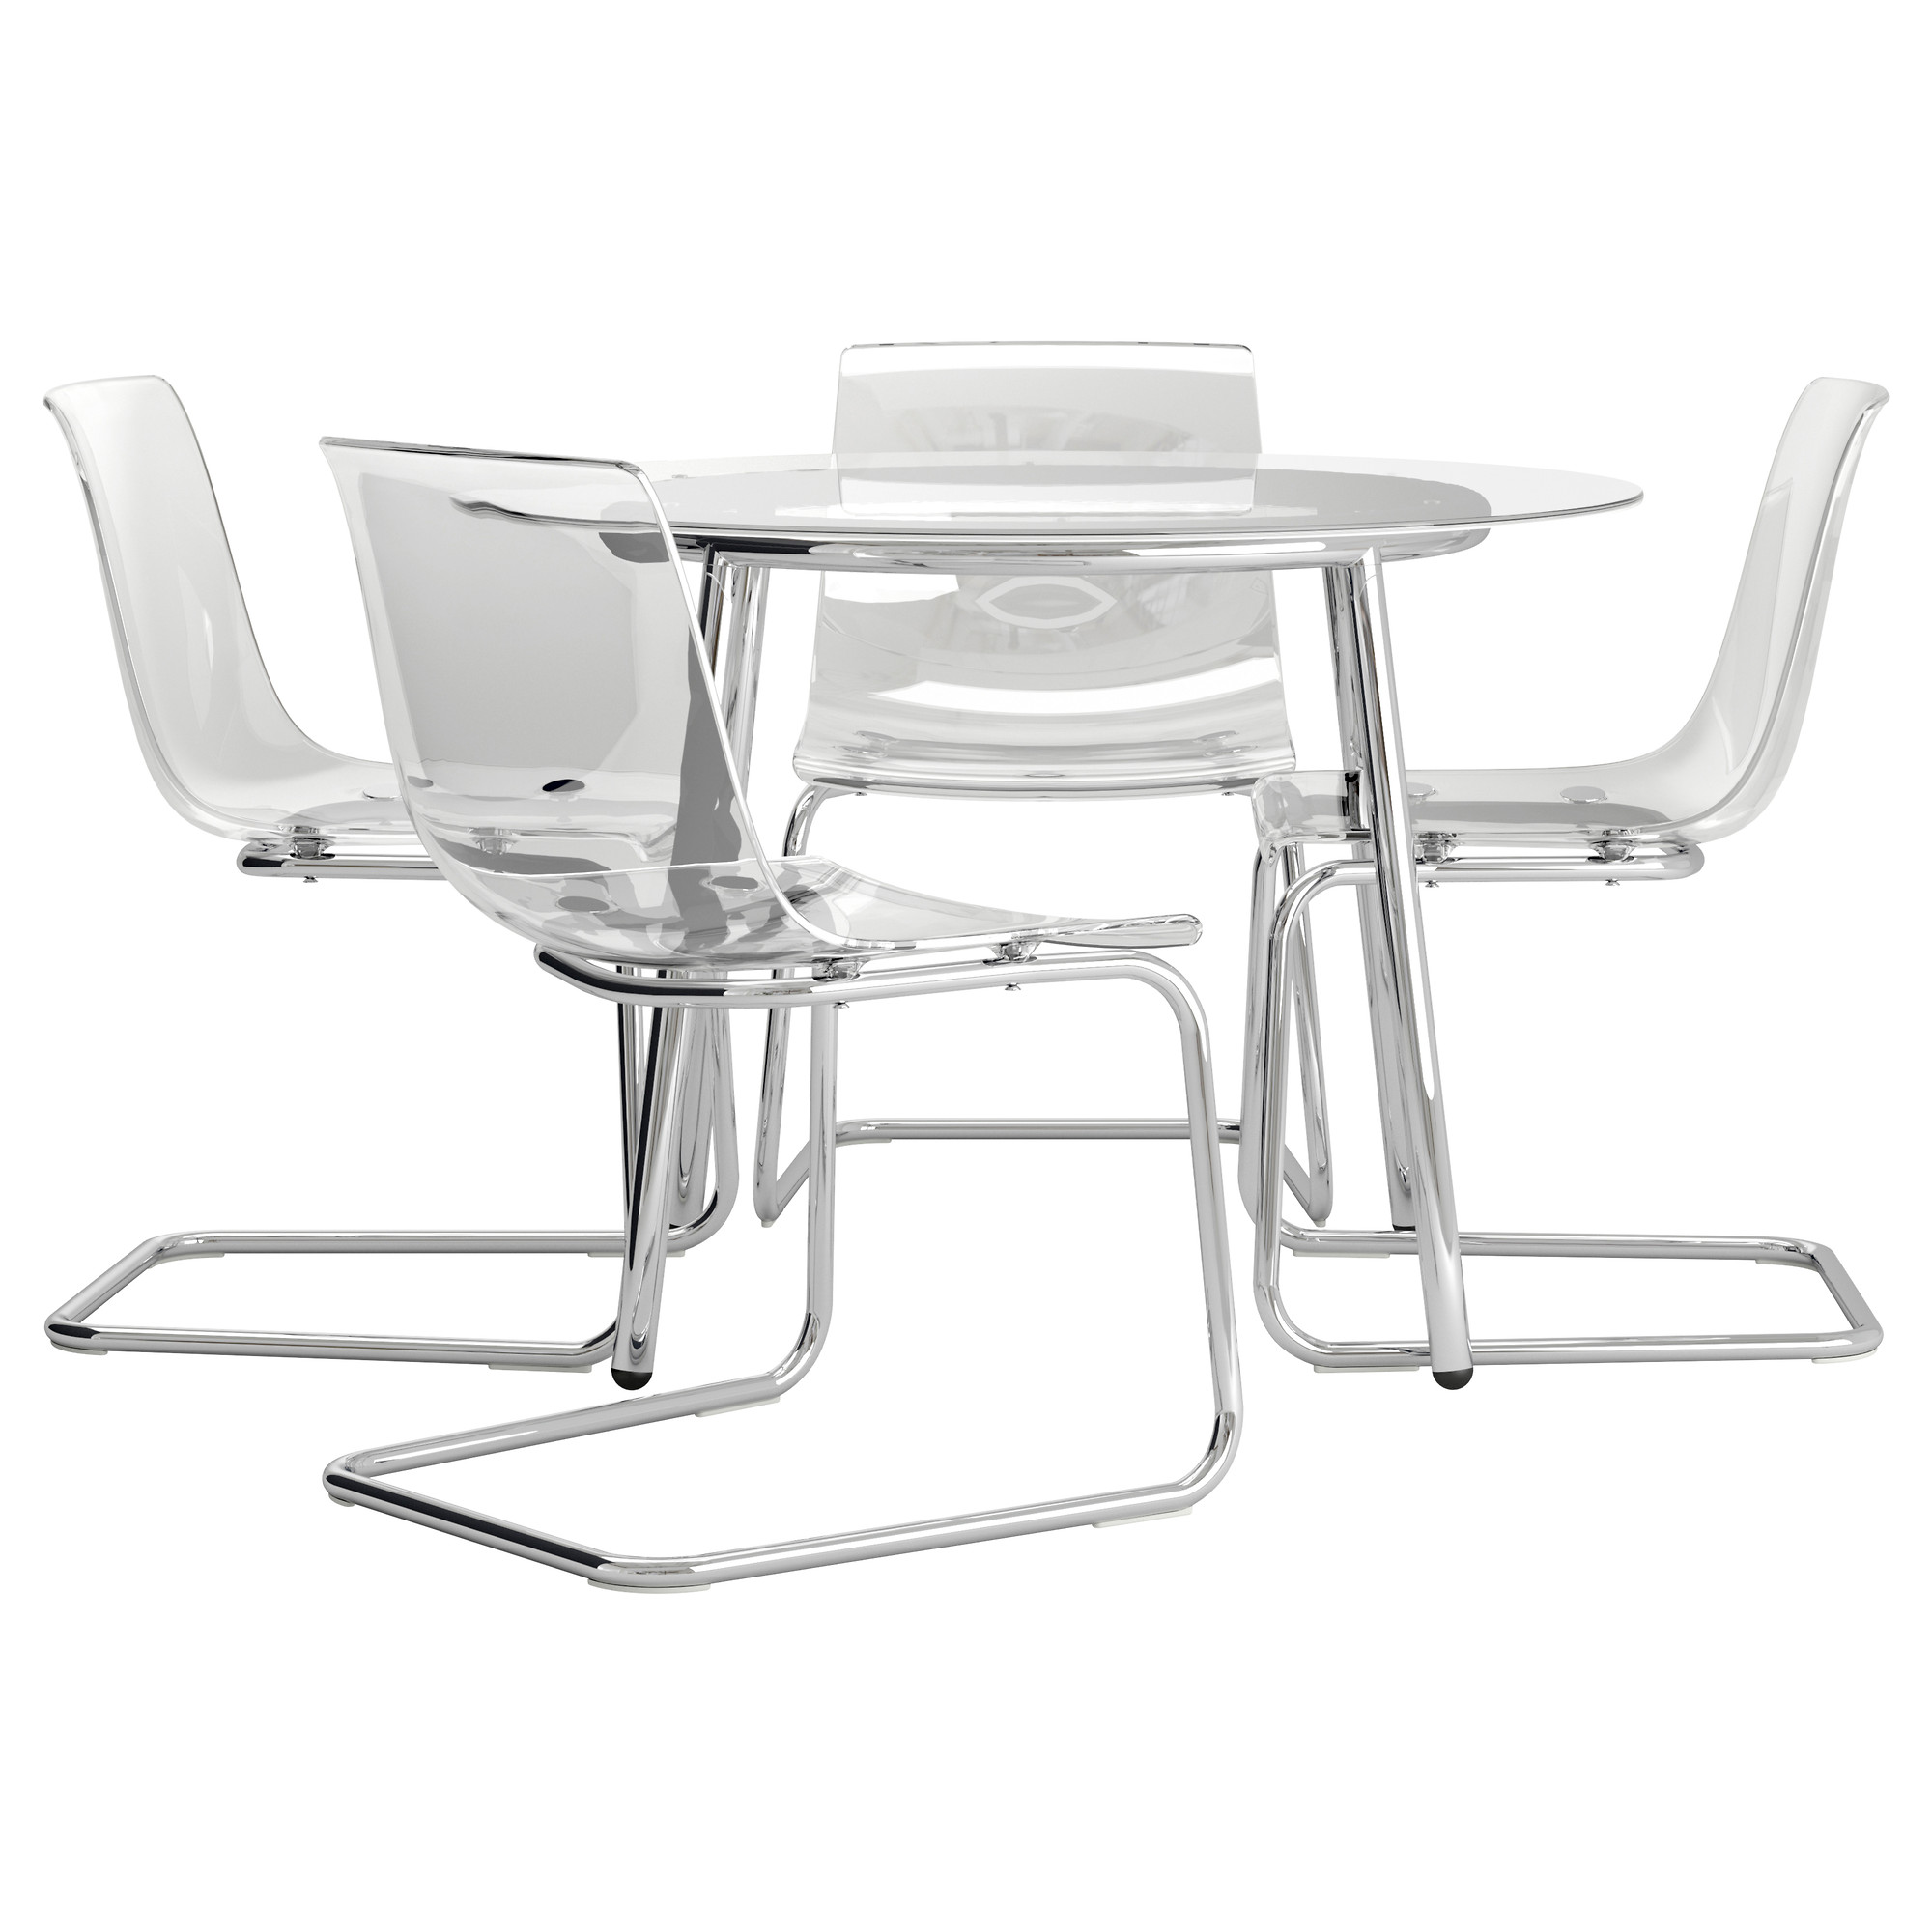 kitchen-chairs-ikea-photo-14